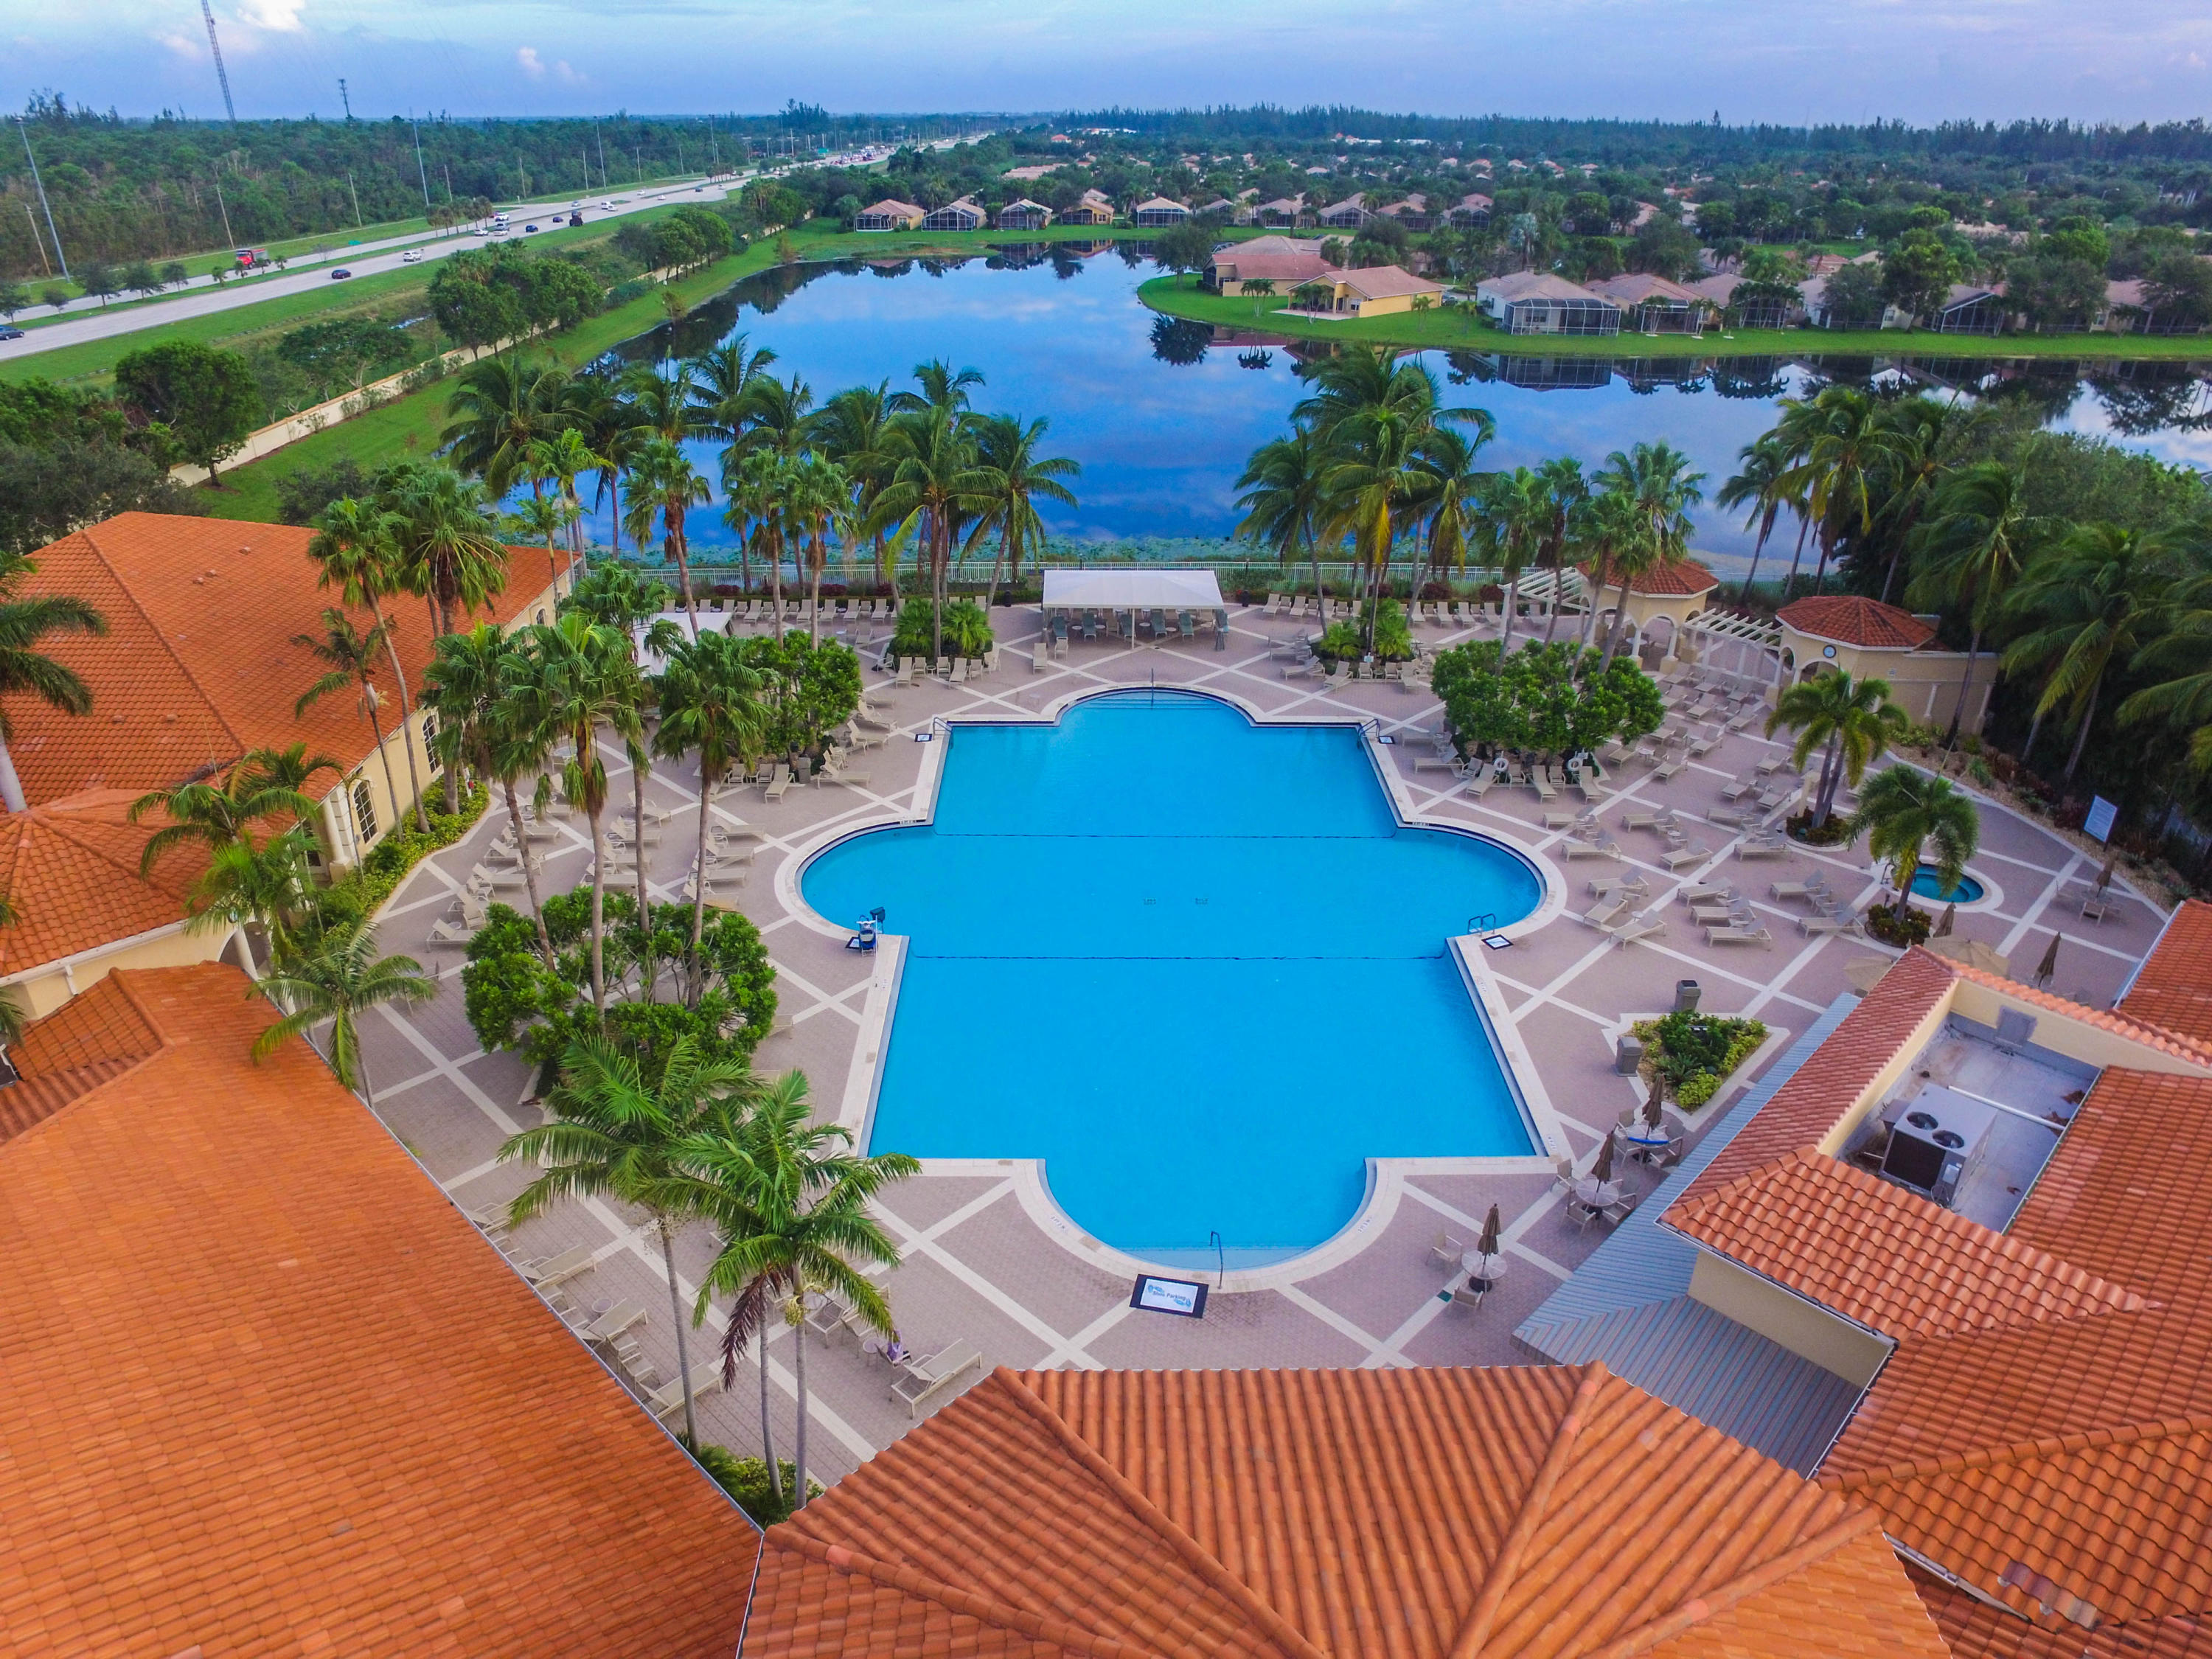 Arial View of Resort Pool